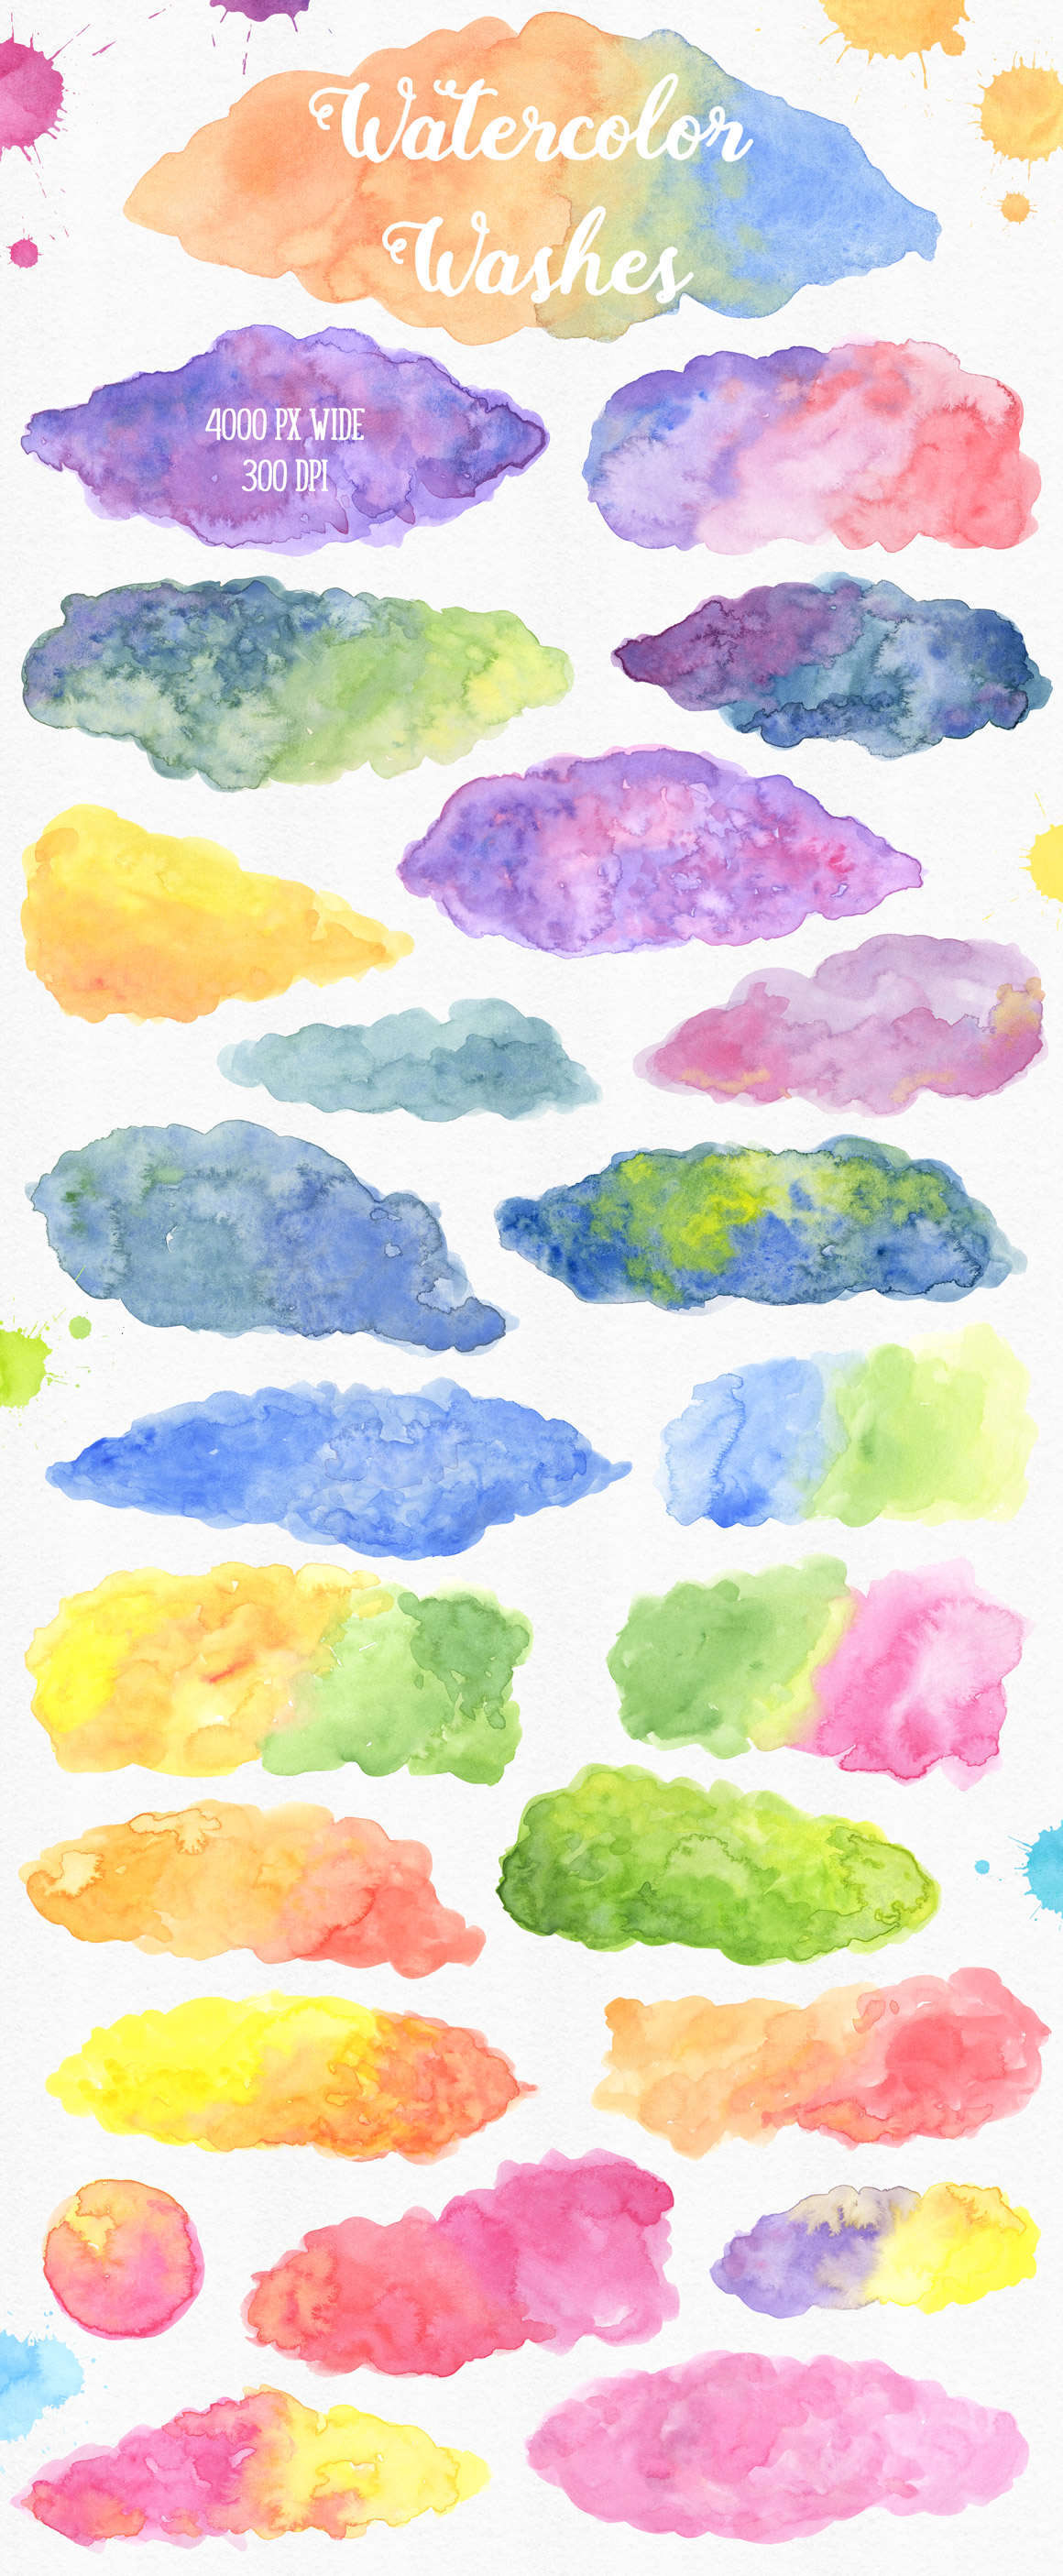 New Watercolor Textures and Graphics Bundle example image 3